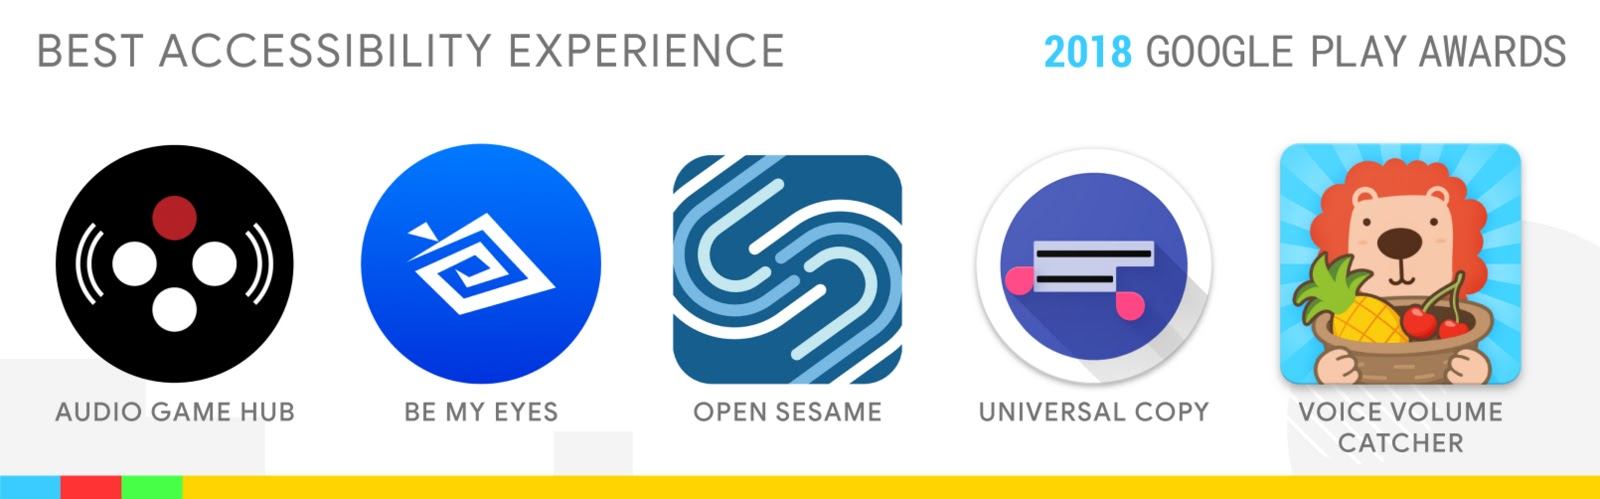 Best Accessibility Experience: Audio Game Hub, Be My Eyes, Open Sesame, Universal Copy, Voice Volume Catcher